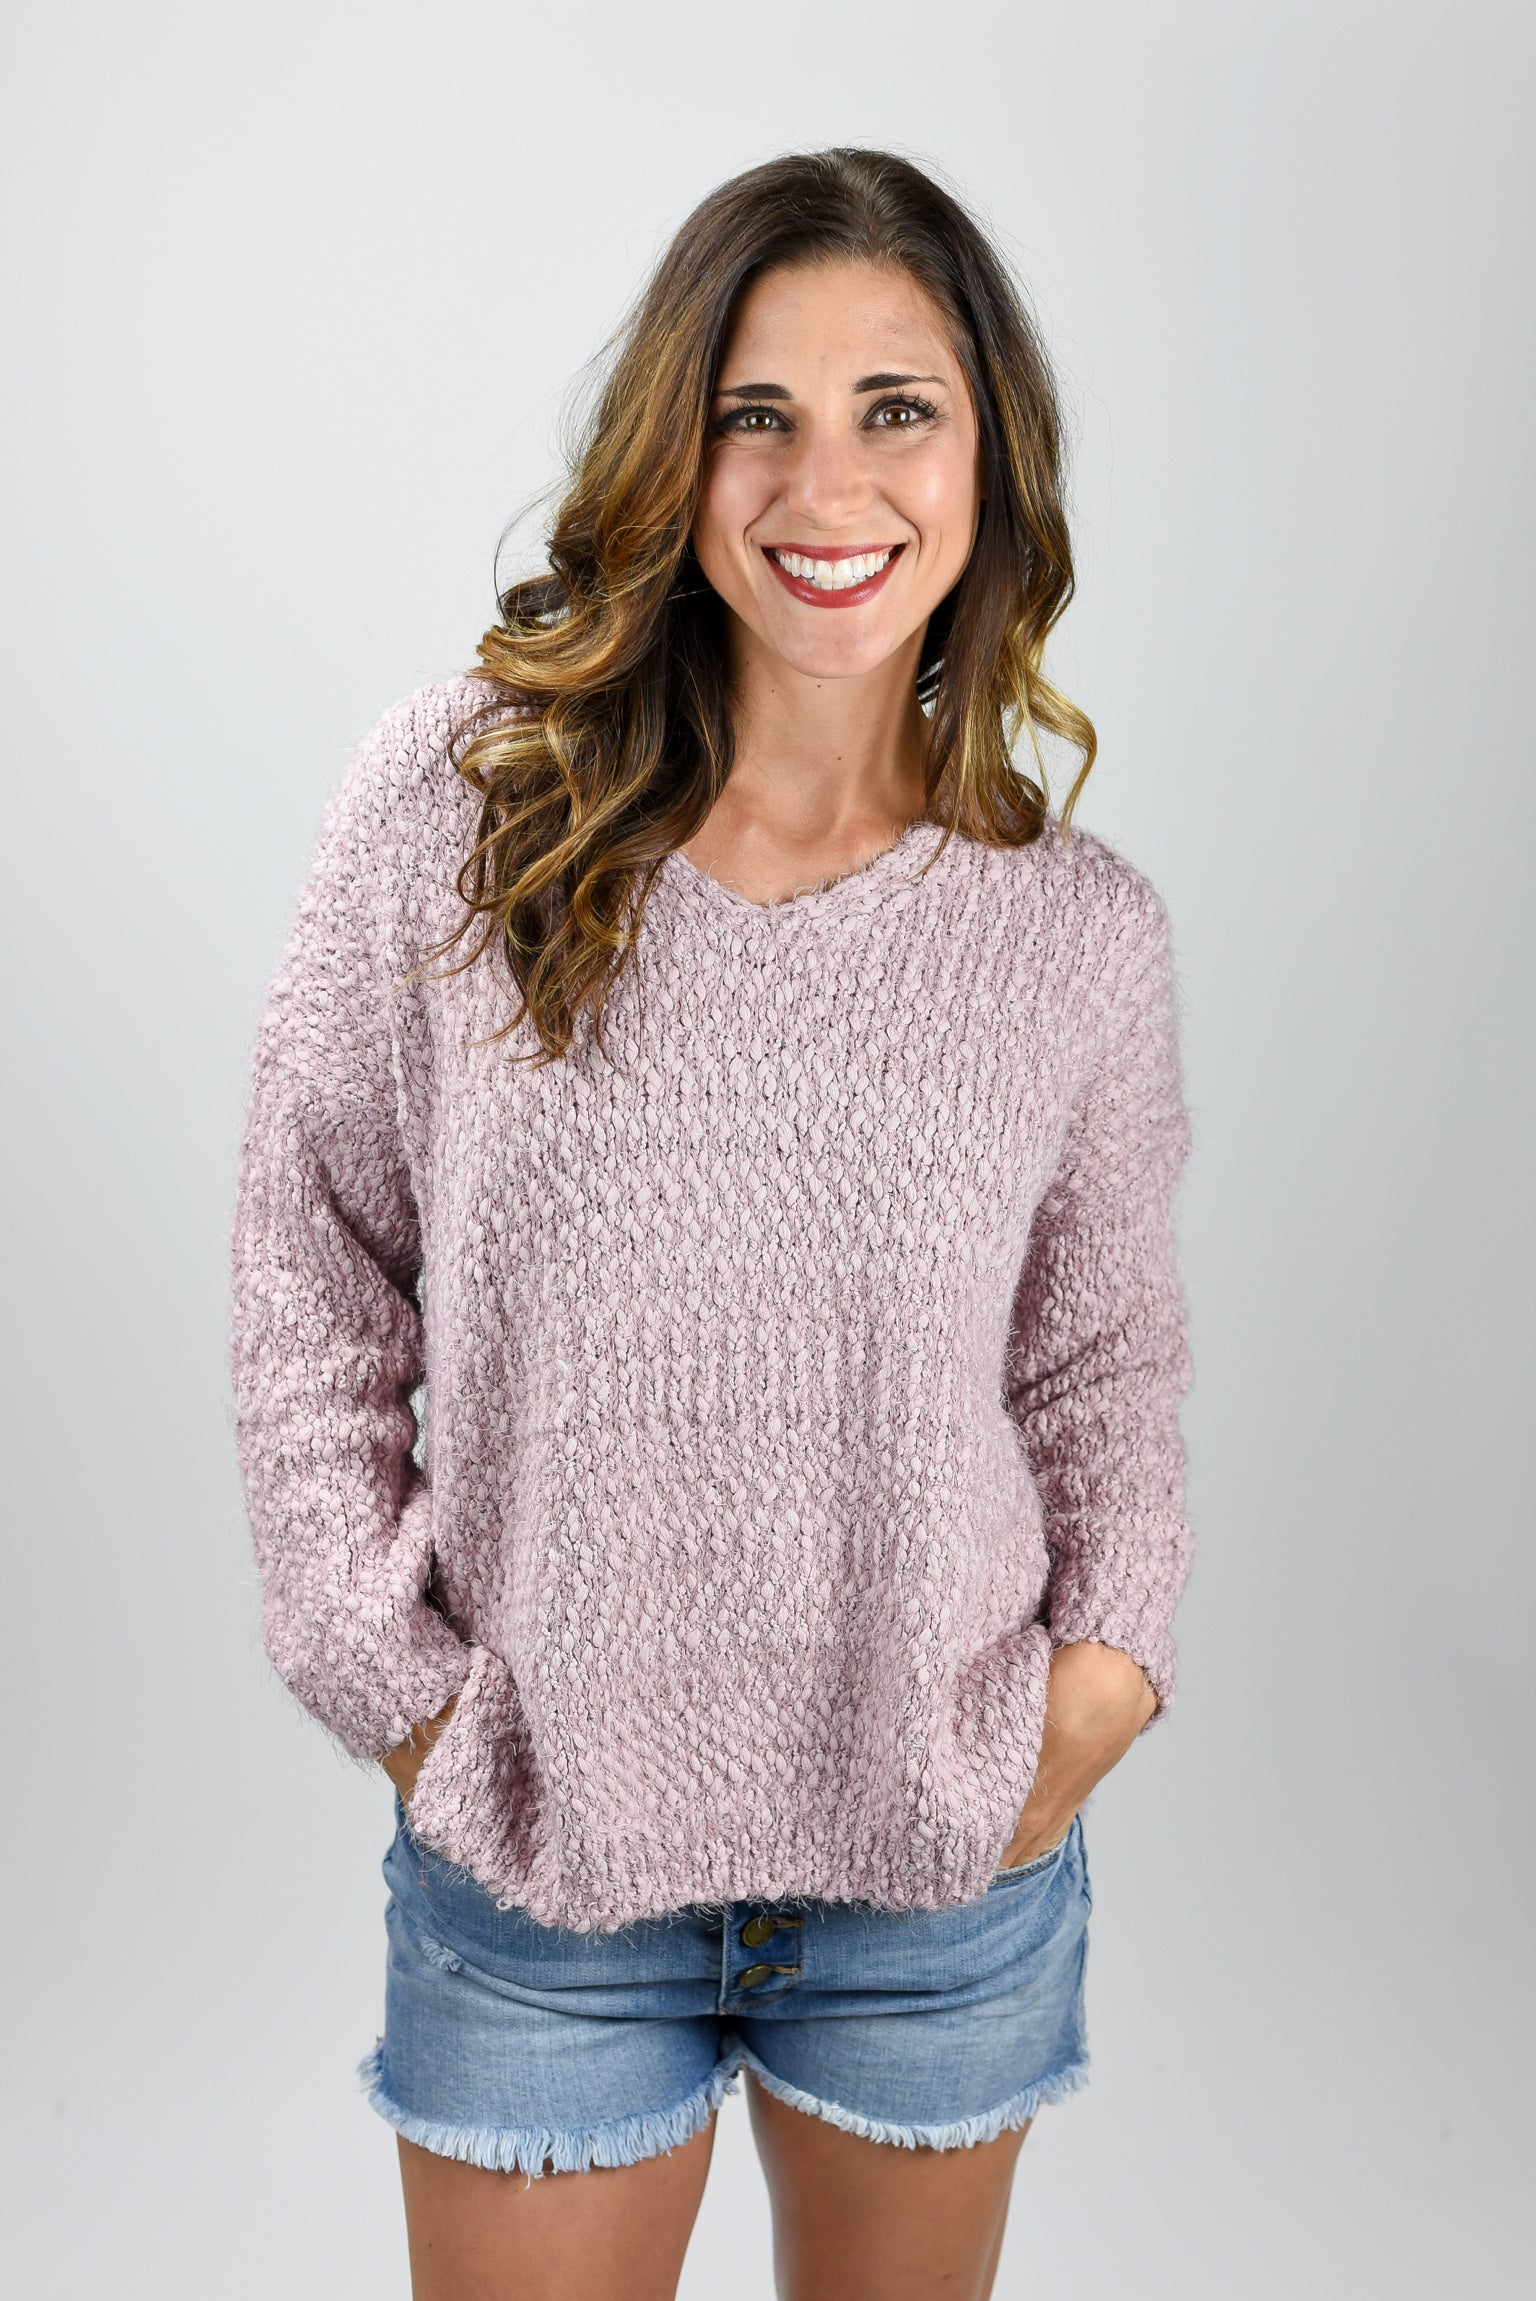 Broken Halos Popcorn Vneck Pullover Sweater- Light Mauve